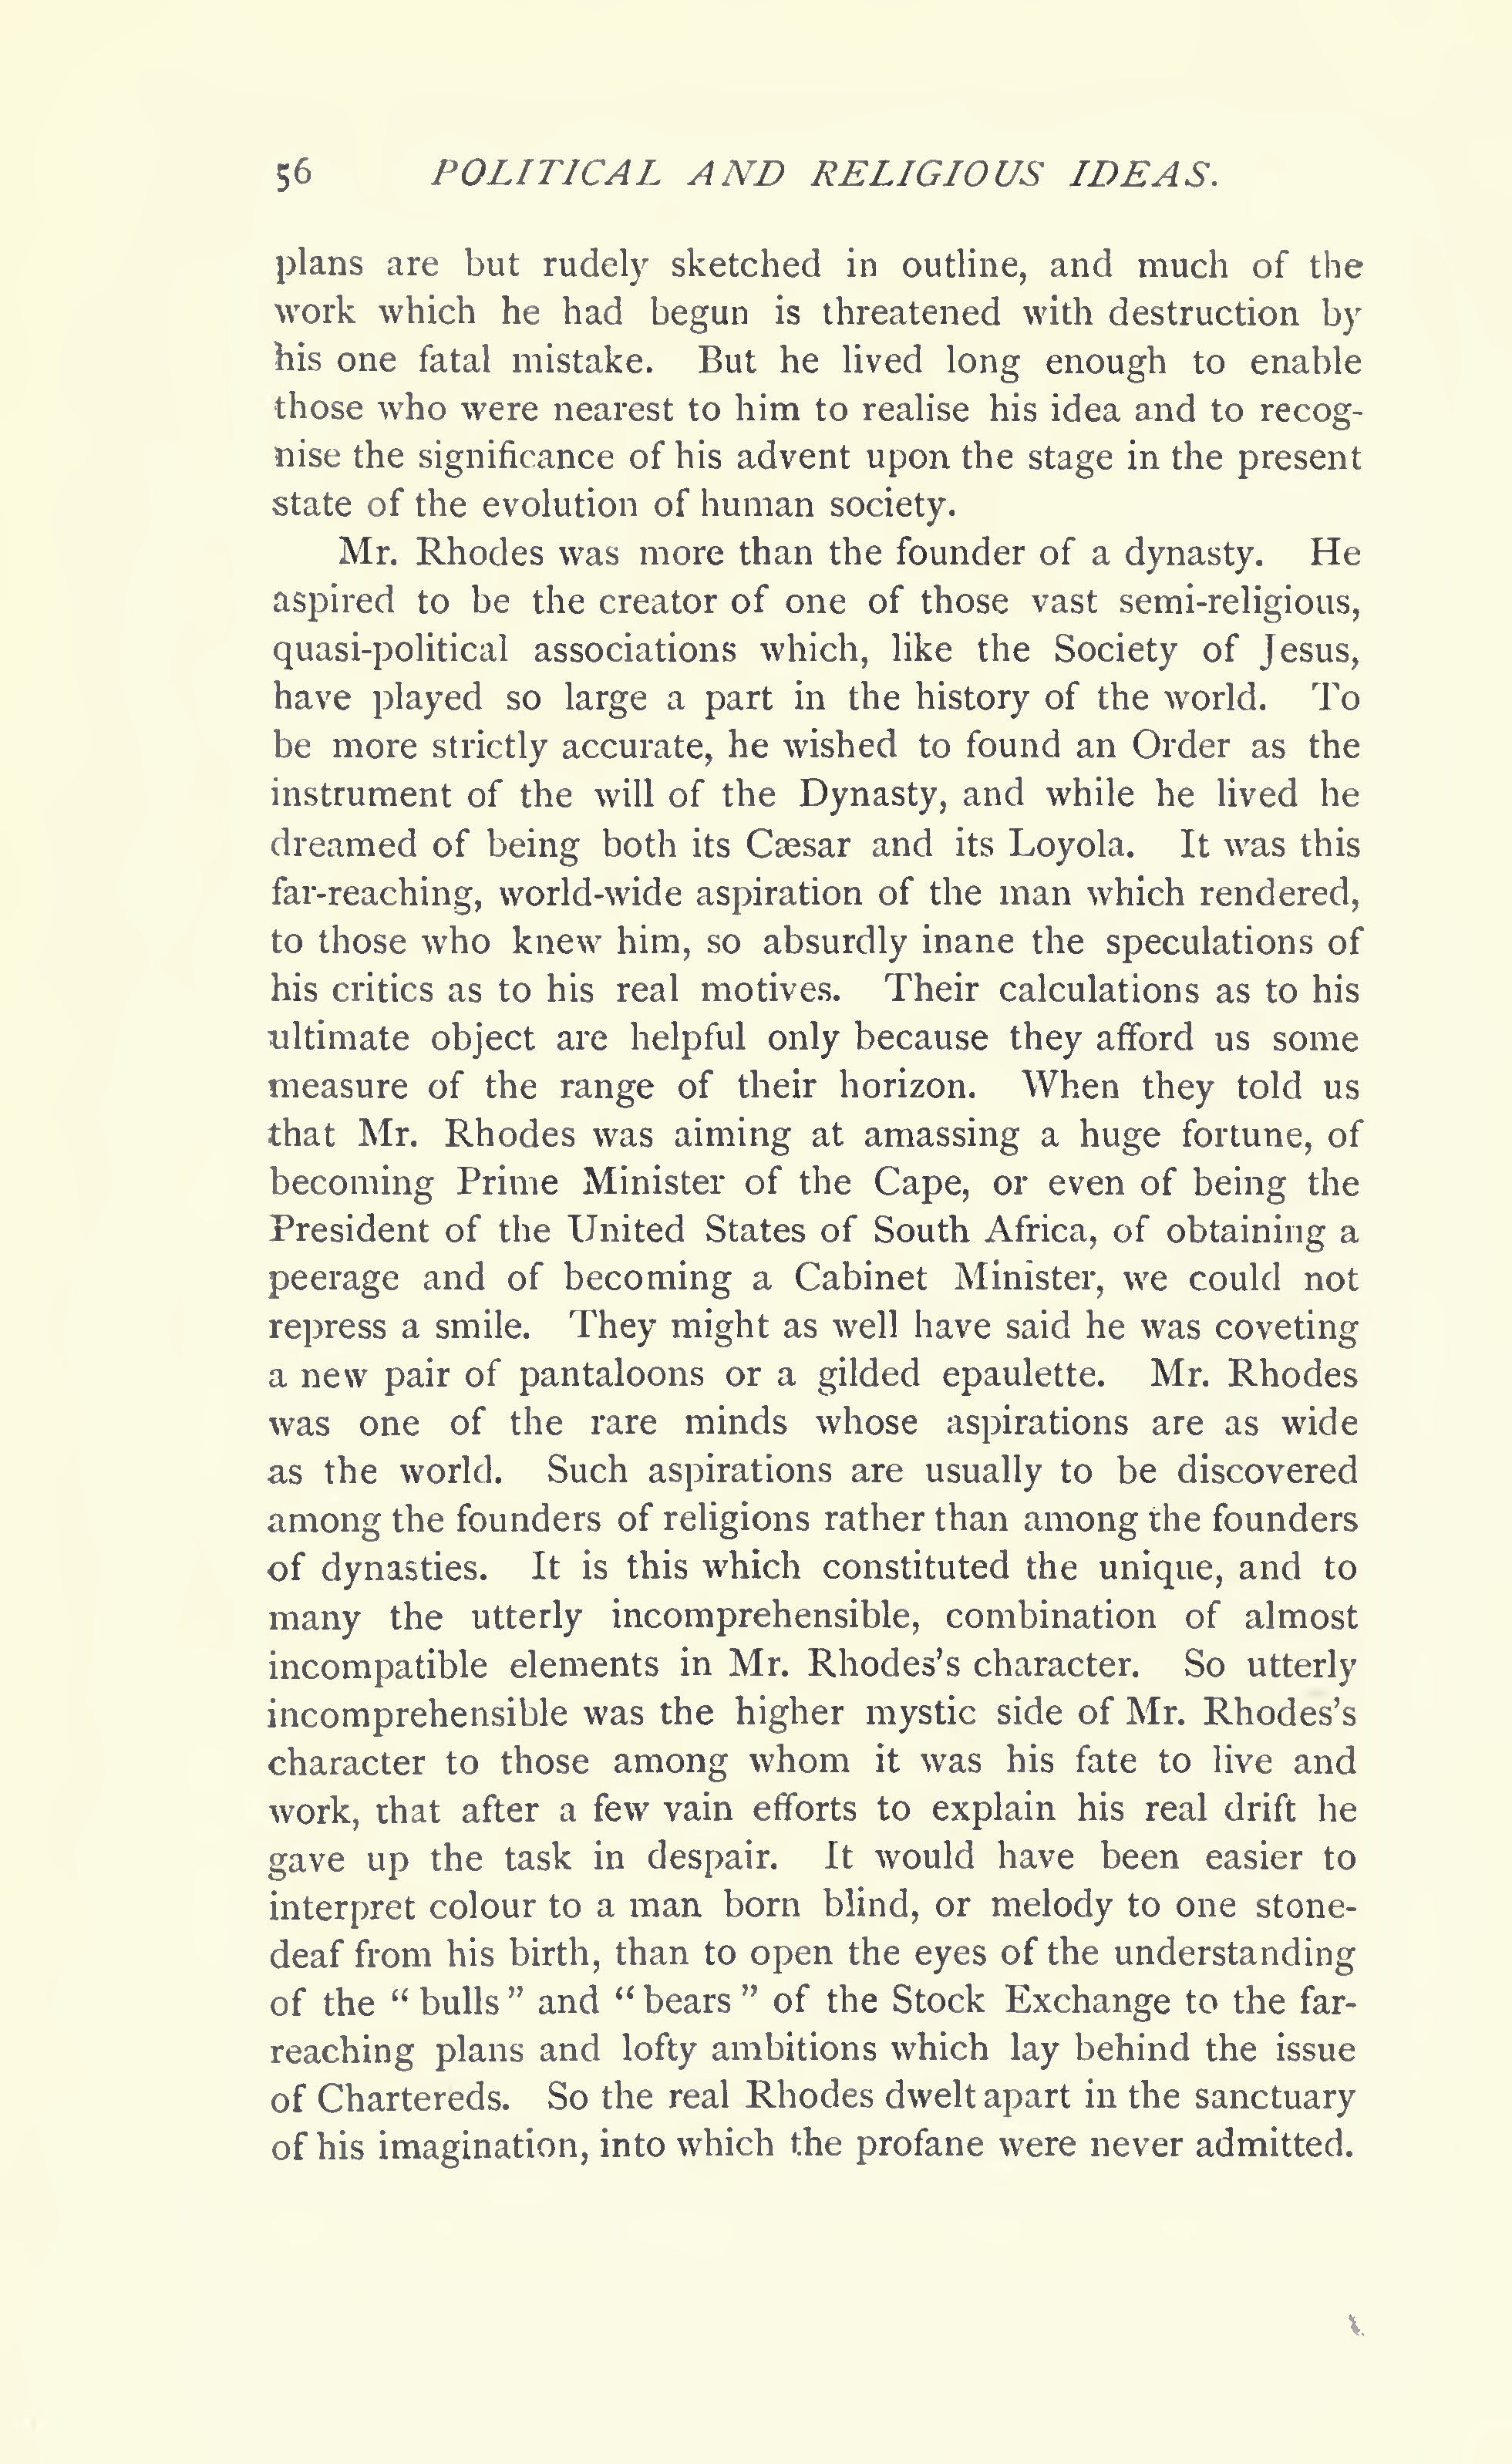 The Last Will And Testament Of Cecil John Rhodes 1902 Public